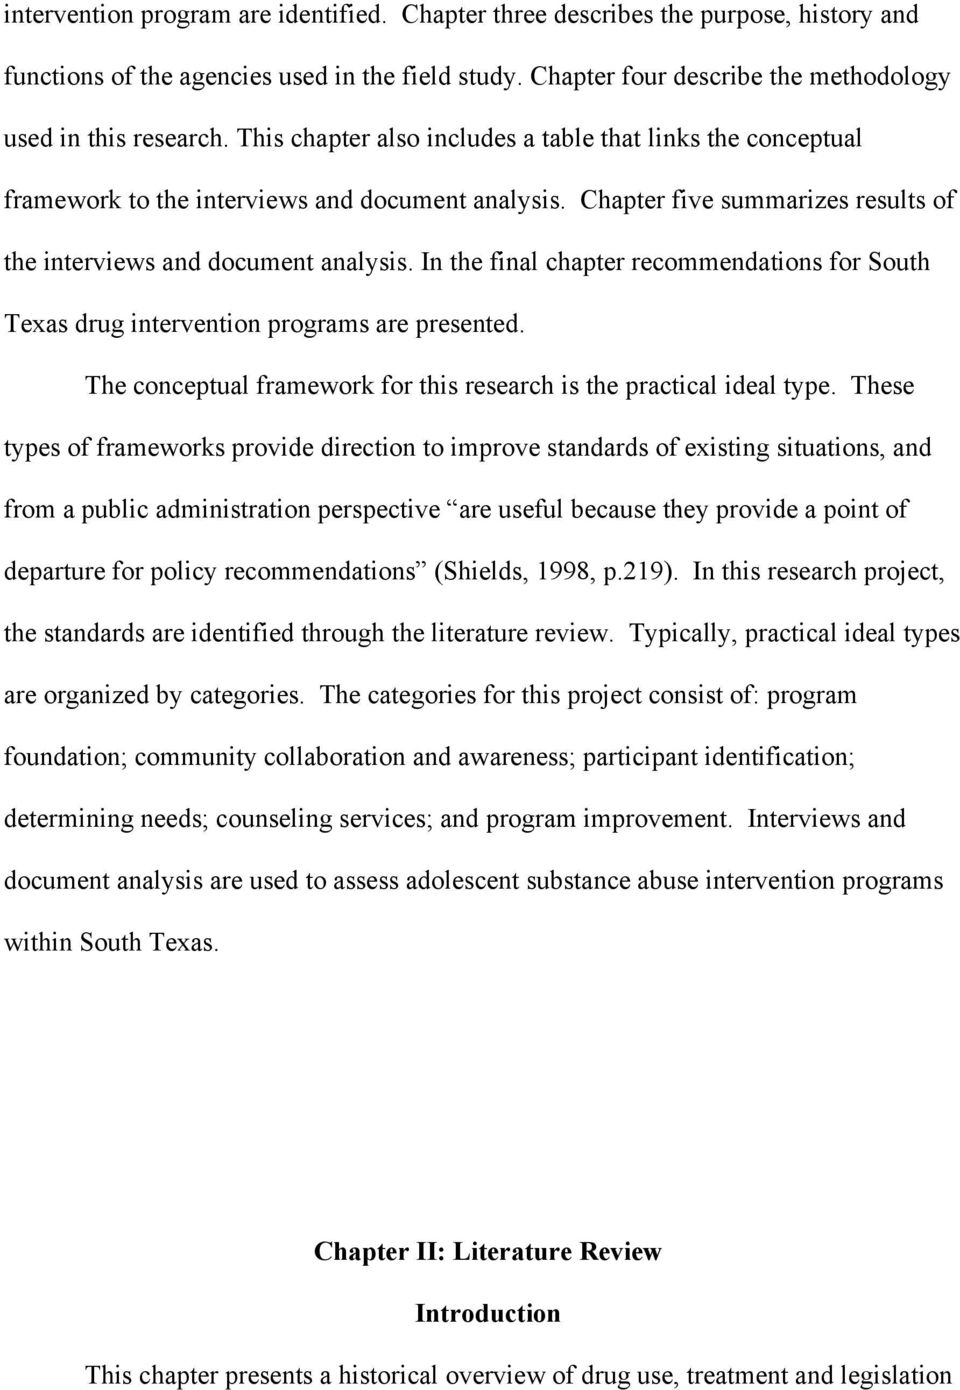 In the final chapter recommendations for South Texas drug intervention programs are presented. The conceptual framework for this research is the practical ideal type.